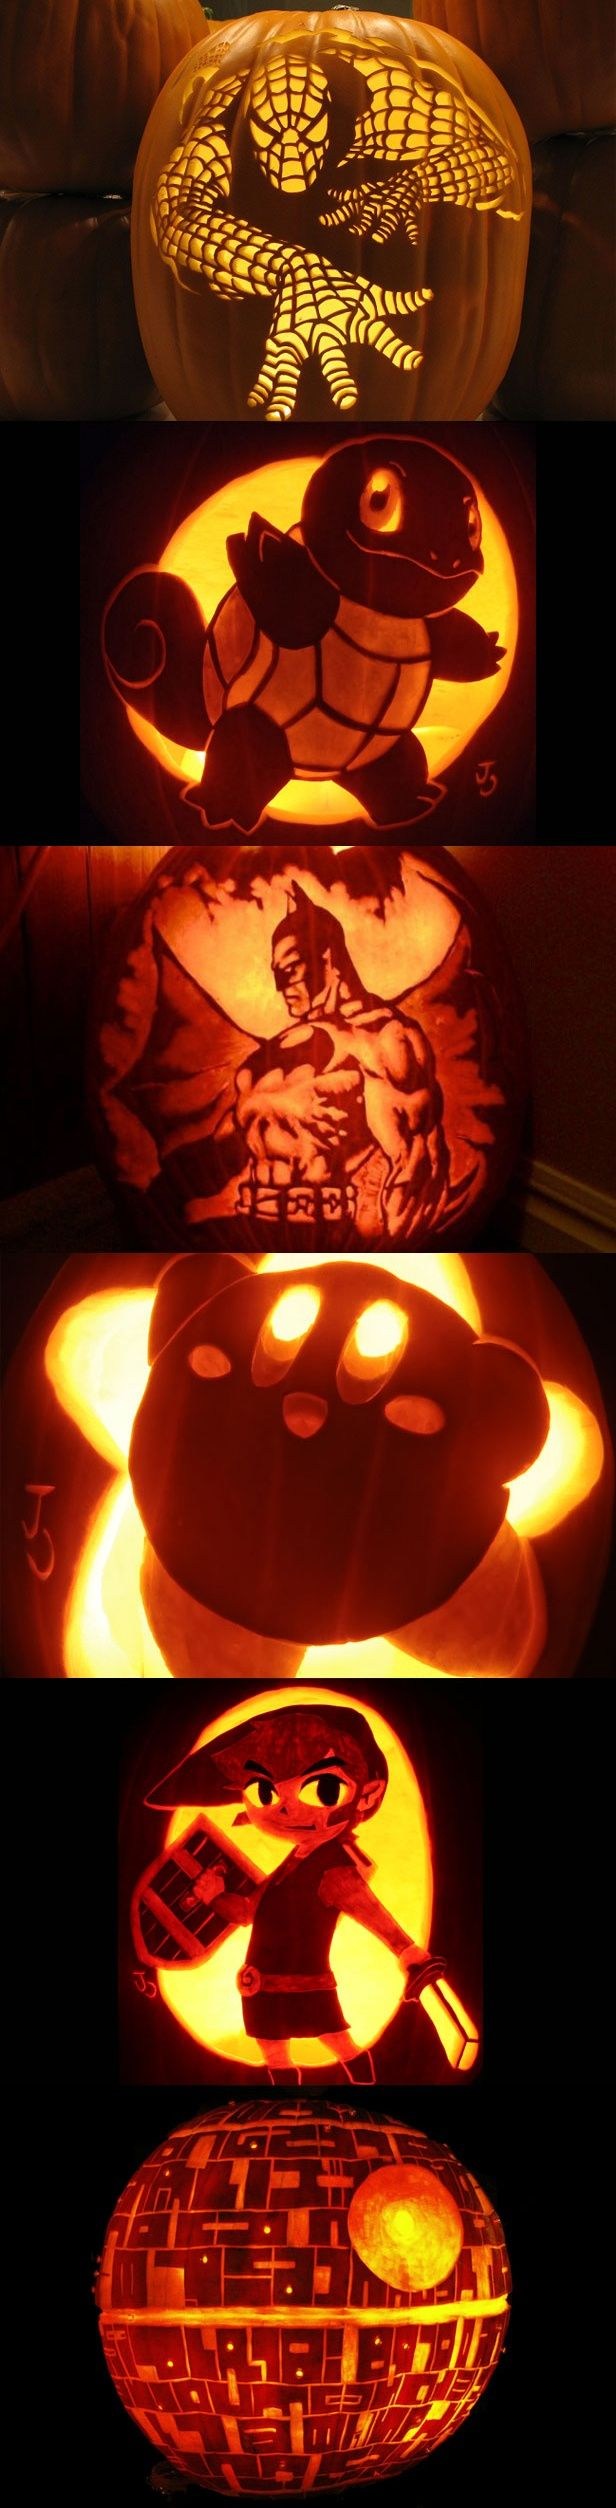 1000 Images About Fright Night Halloween On Pinterest